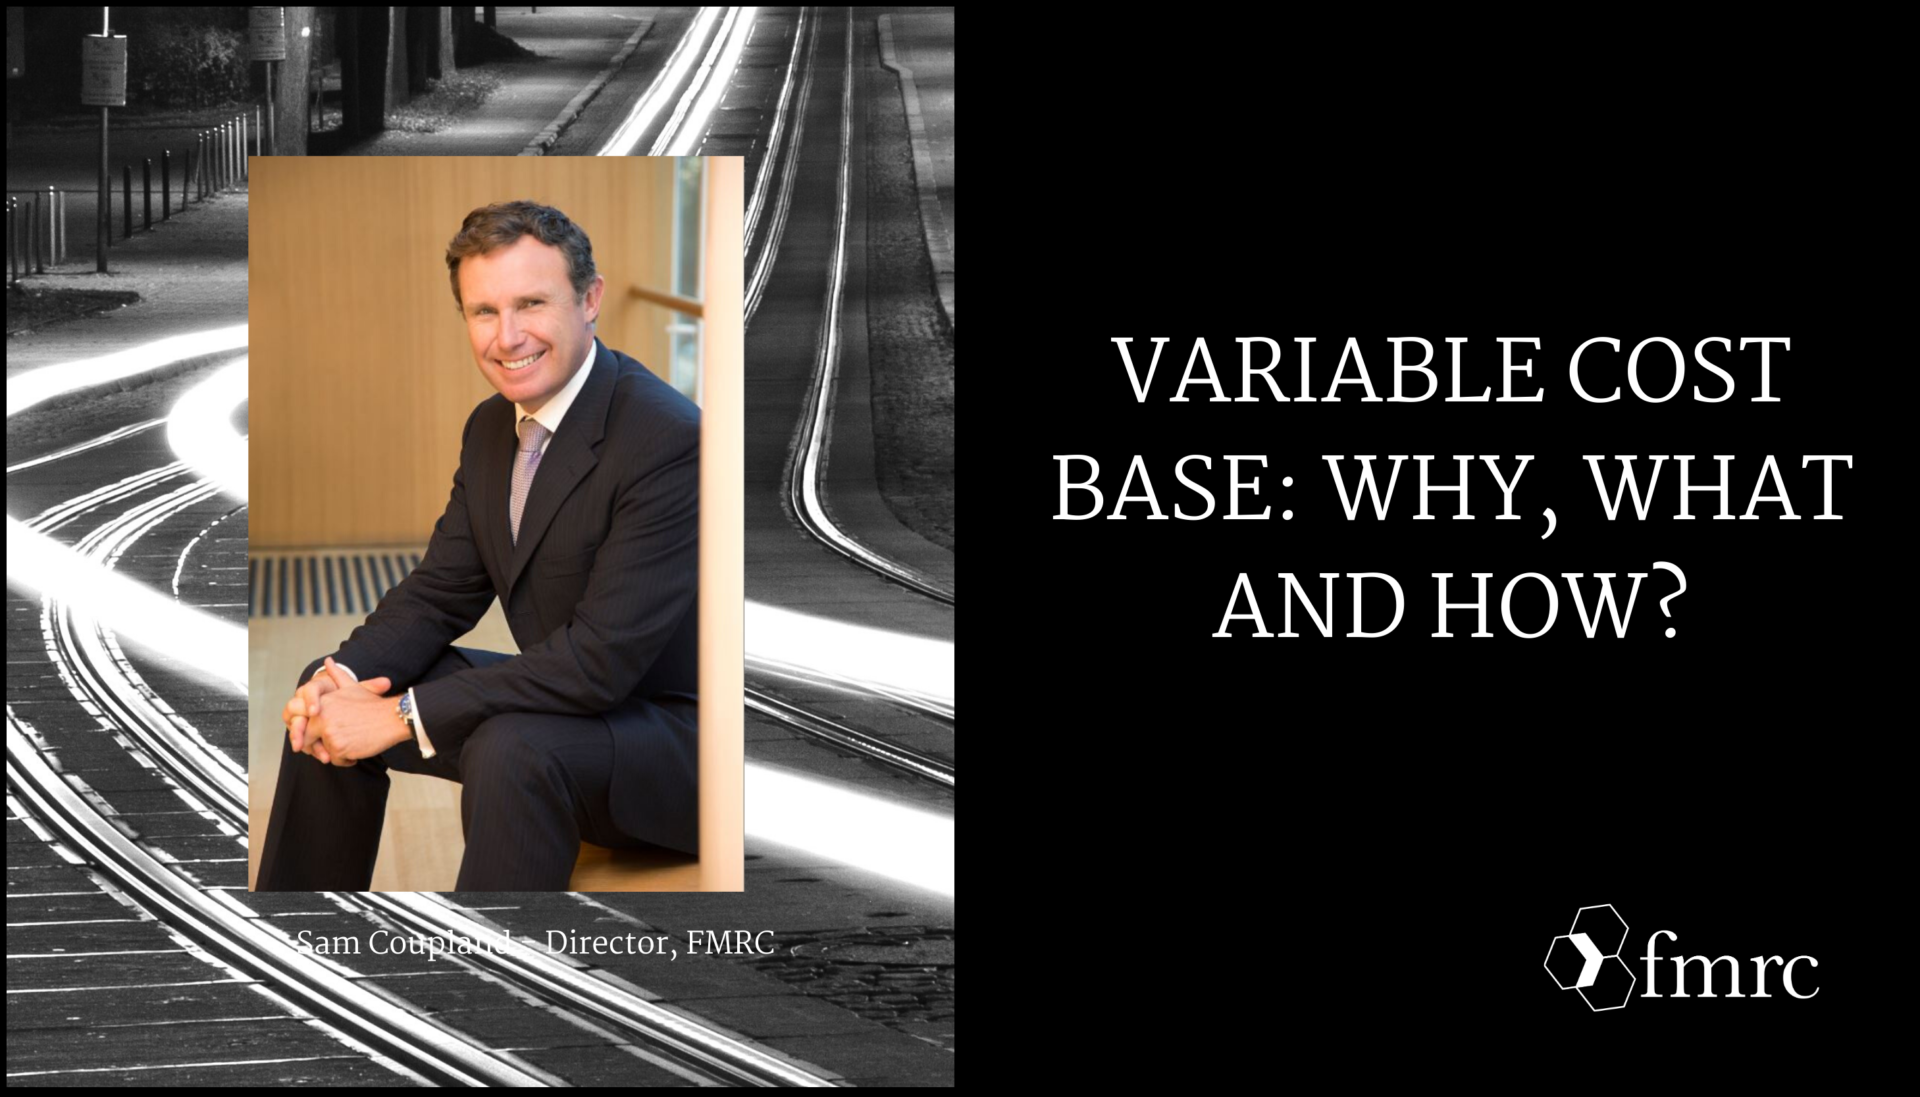 Variable Cost Base: Why, What, and How?